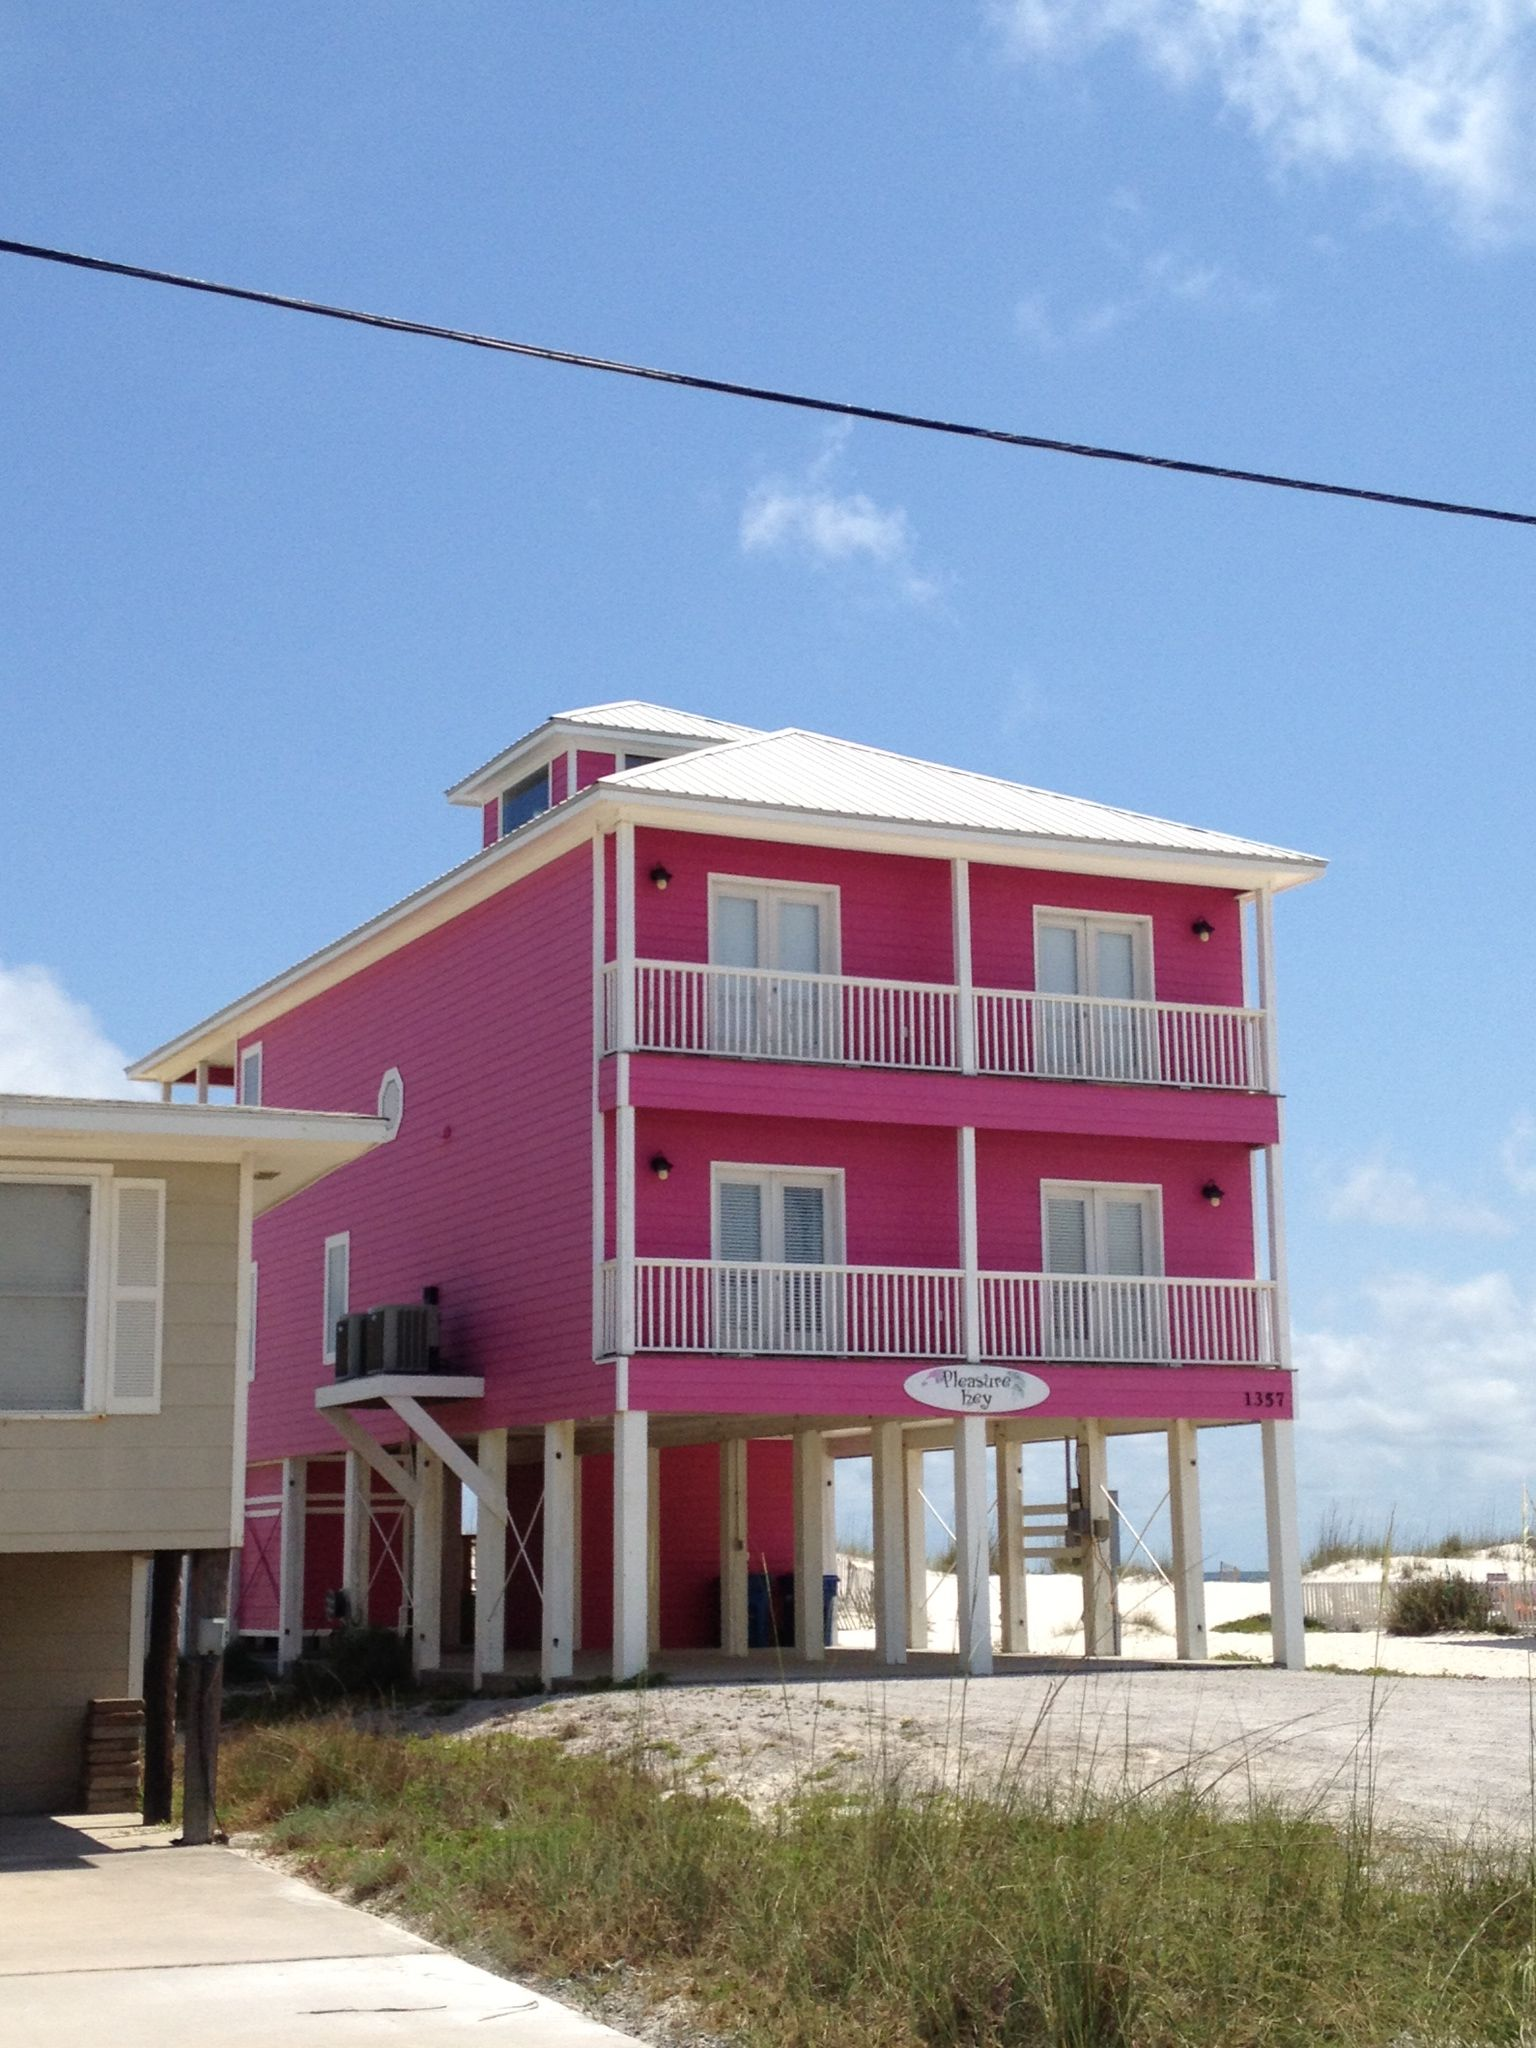 Hot pink beach house in gulf shores Alabama for sale offers a special beach  get away or rental investment! Fall In love.